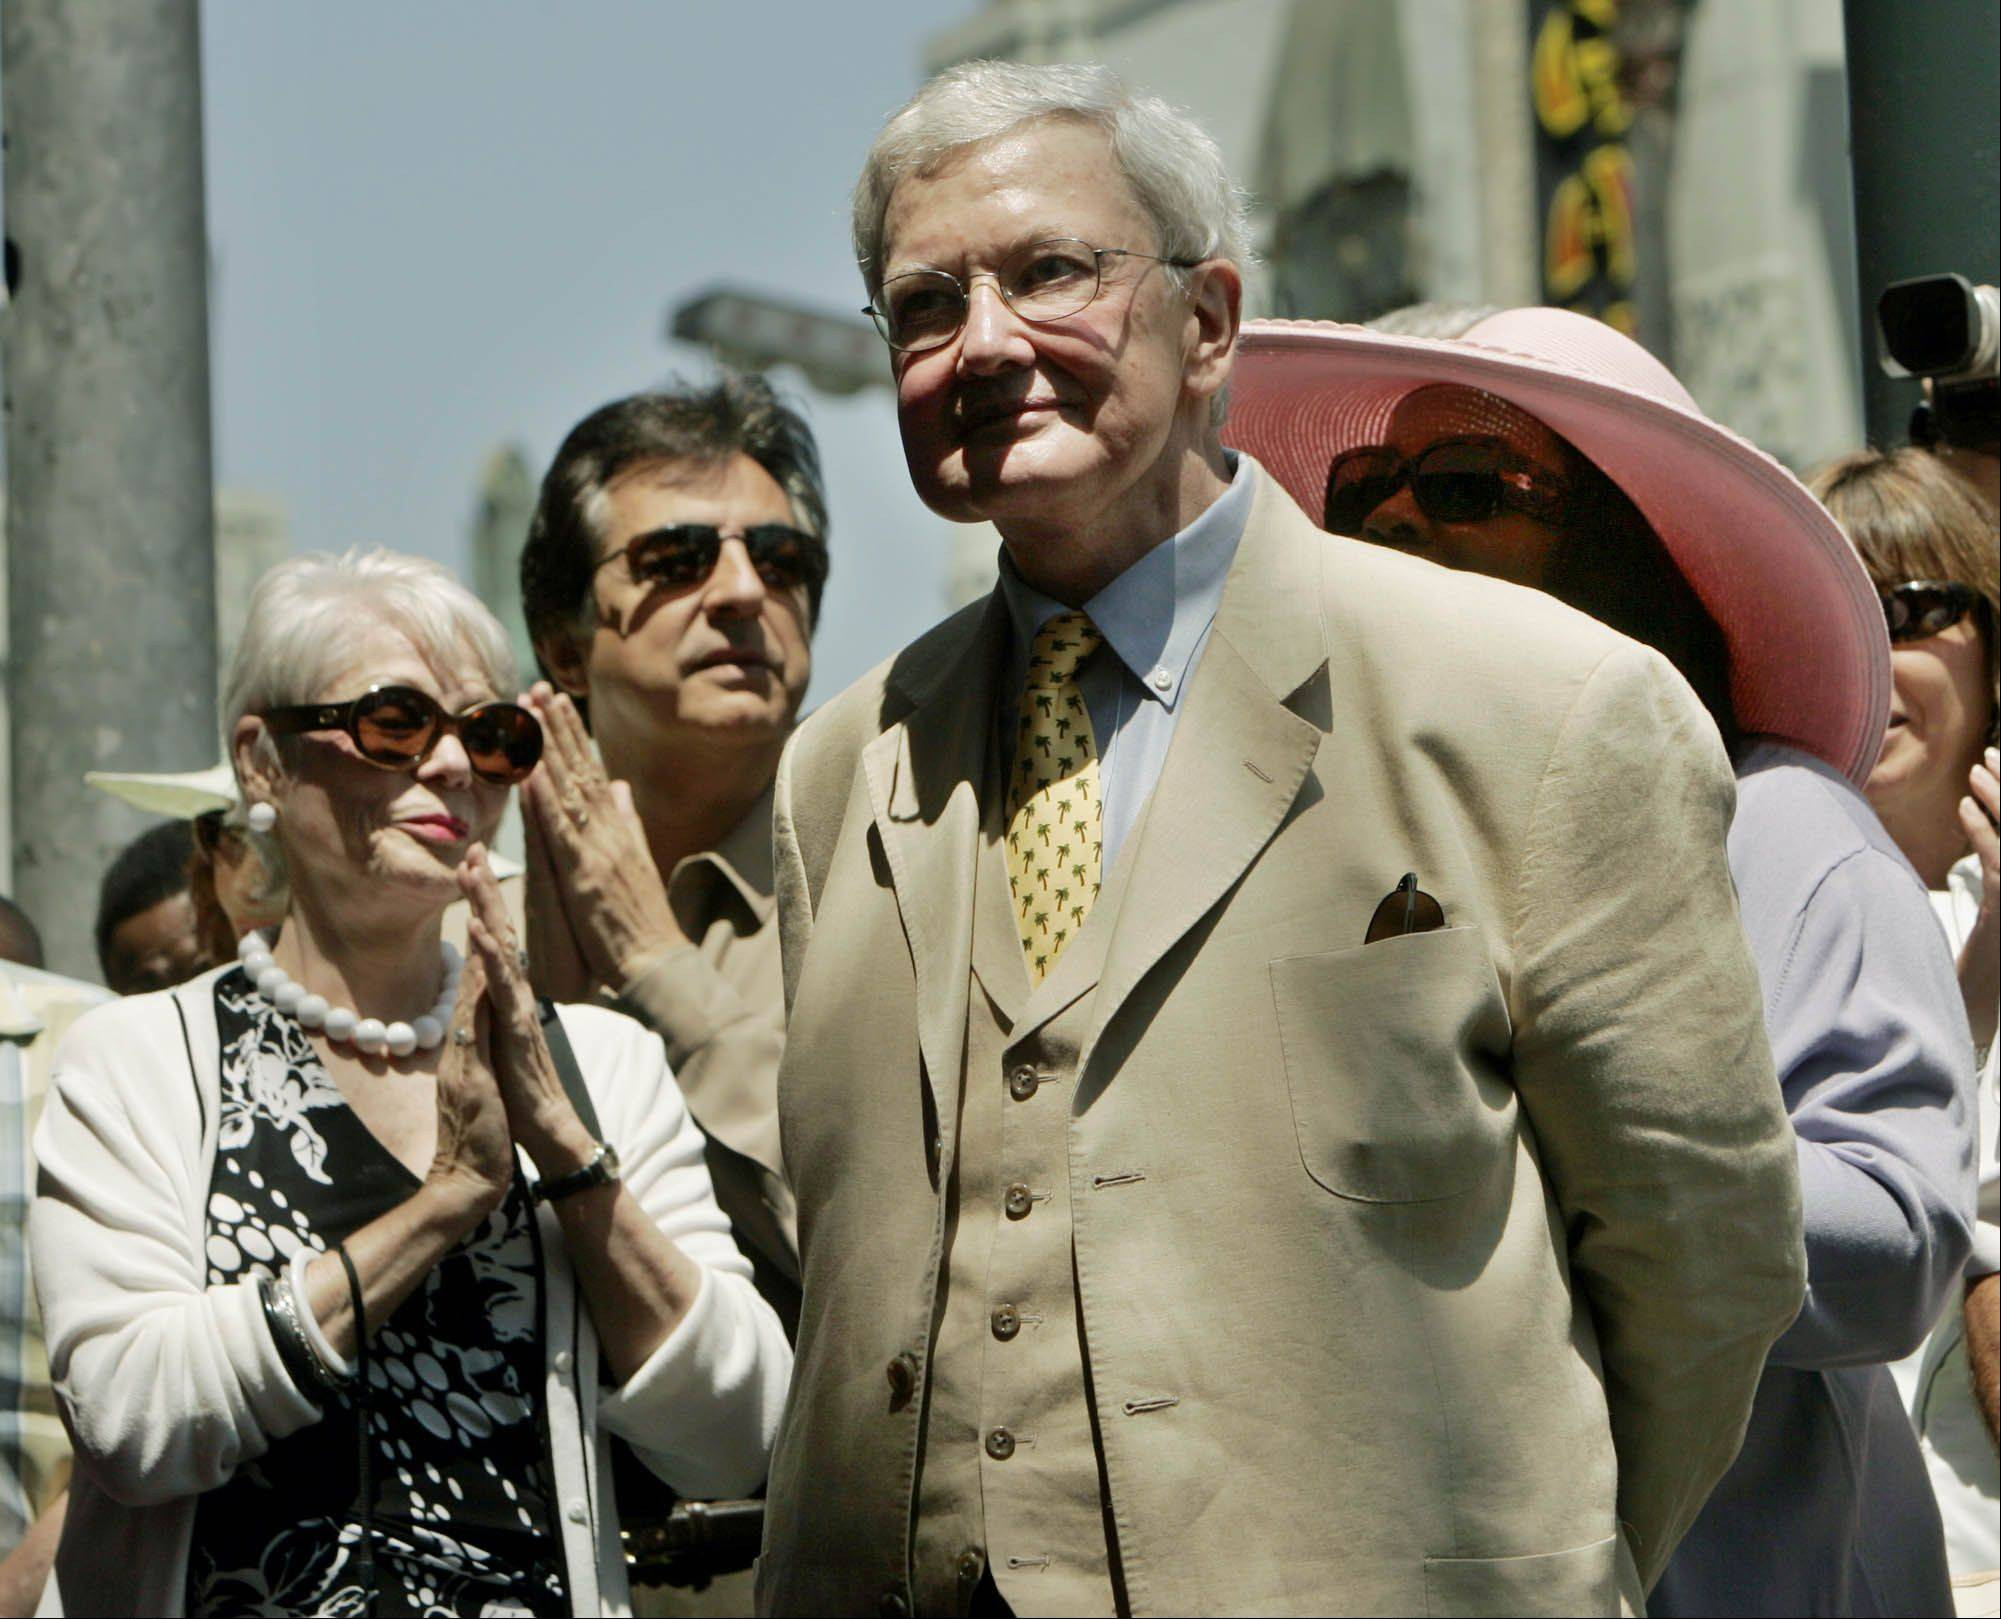 Film critic Roger Ebert, center, is applauded during a ceremony in his honor Thursday, June 23, 2005, in the Hollywood section of Los Angeles. Ebert was honored with the 2,288th star on the Hollywood Walk of Fame.